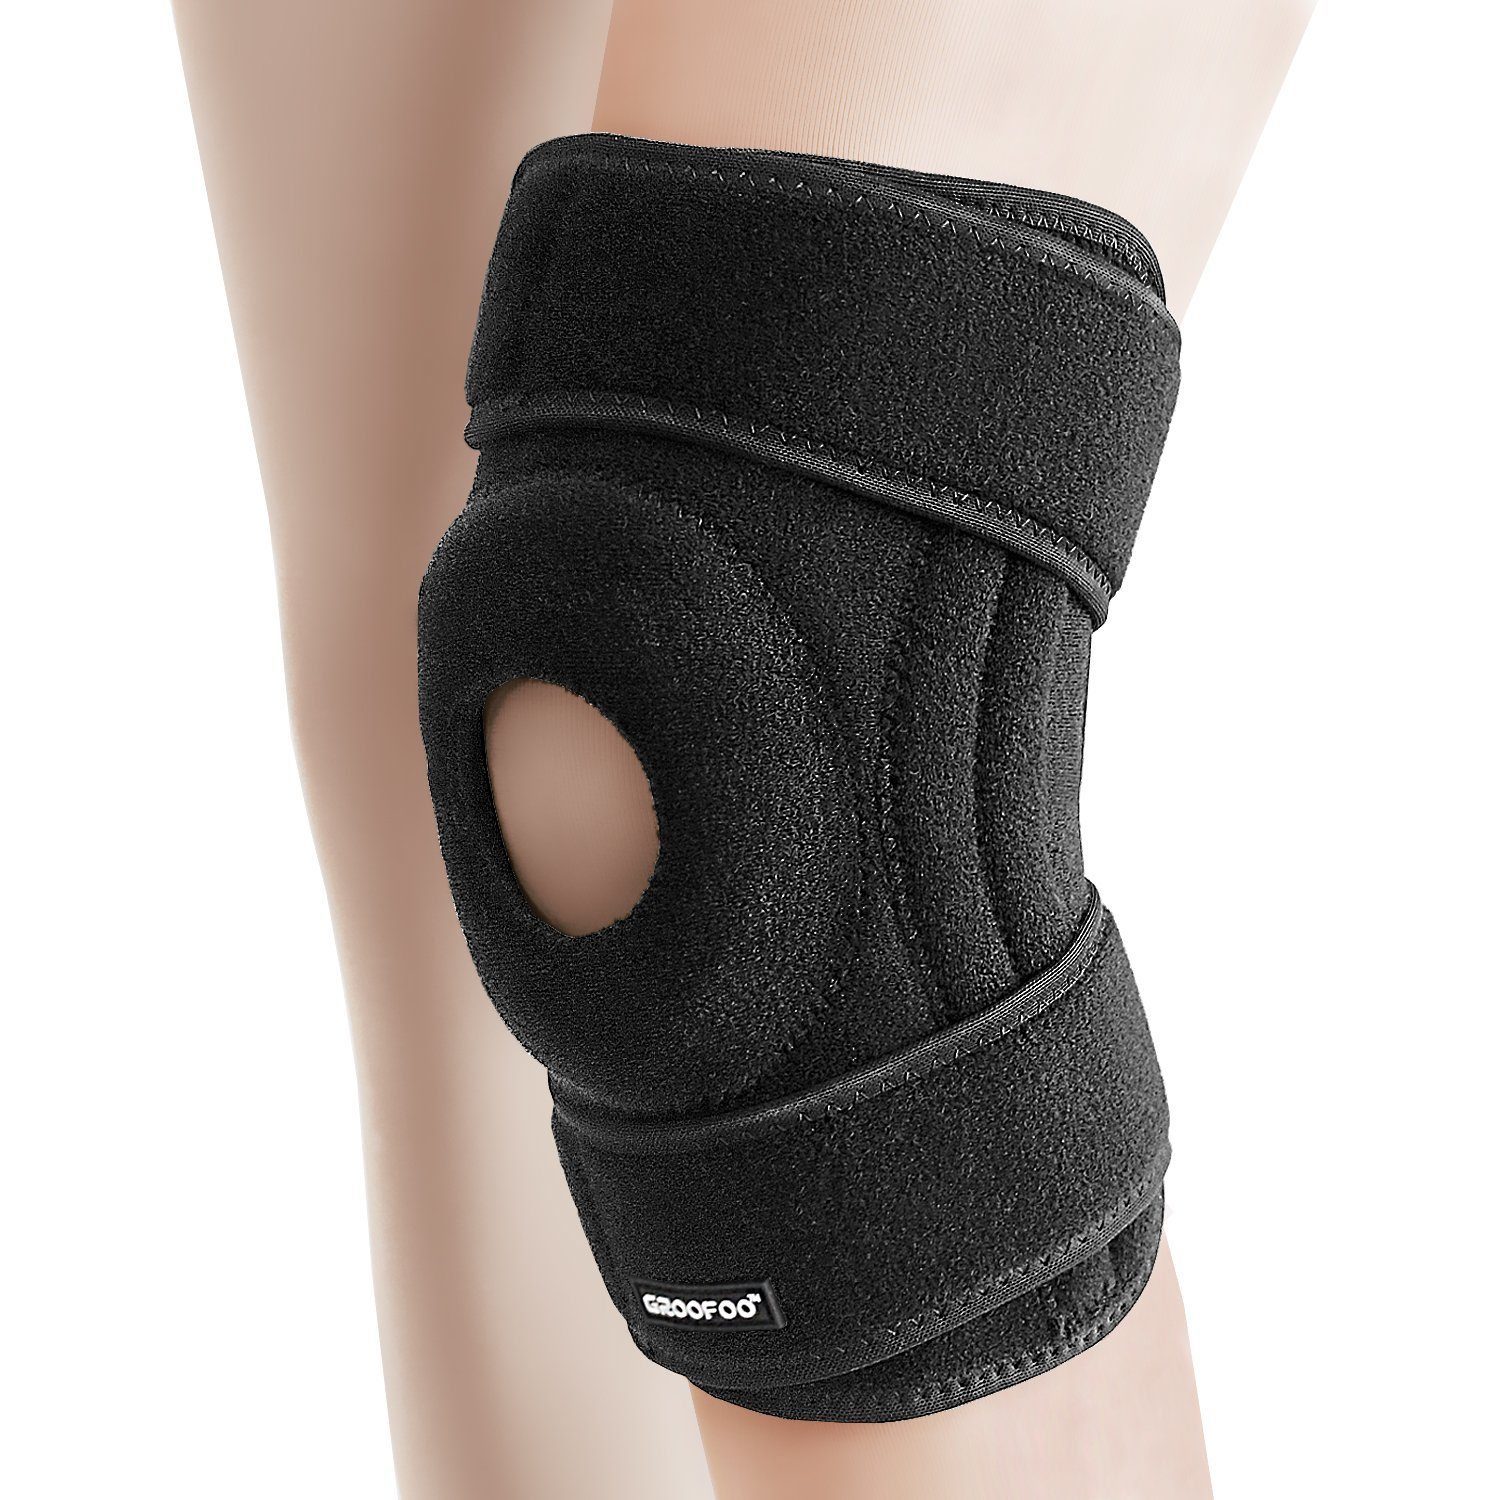 Knee Brace, GROOFOO [Hinged Knee Brace] [Knee Support] [Hinged Knee Brace]- Non Slip Comfortable Neoprene with 2 Strong Adjustable Velcro Grips- Insert a soft cushion ring for patella